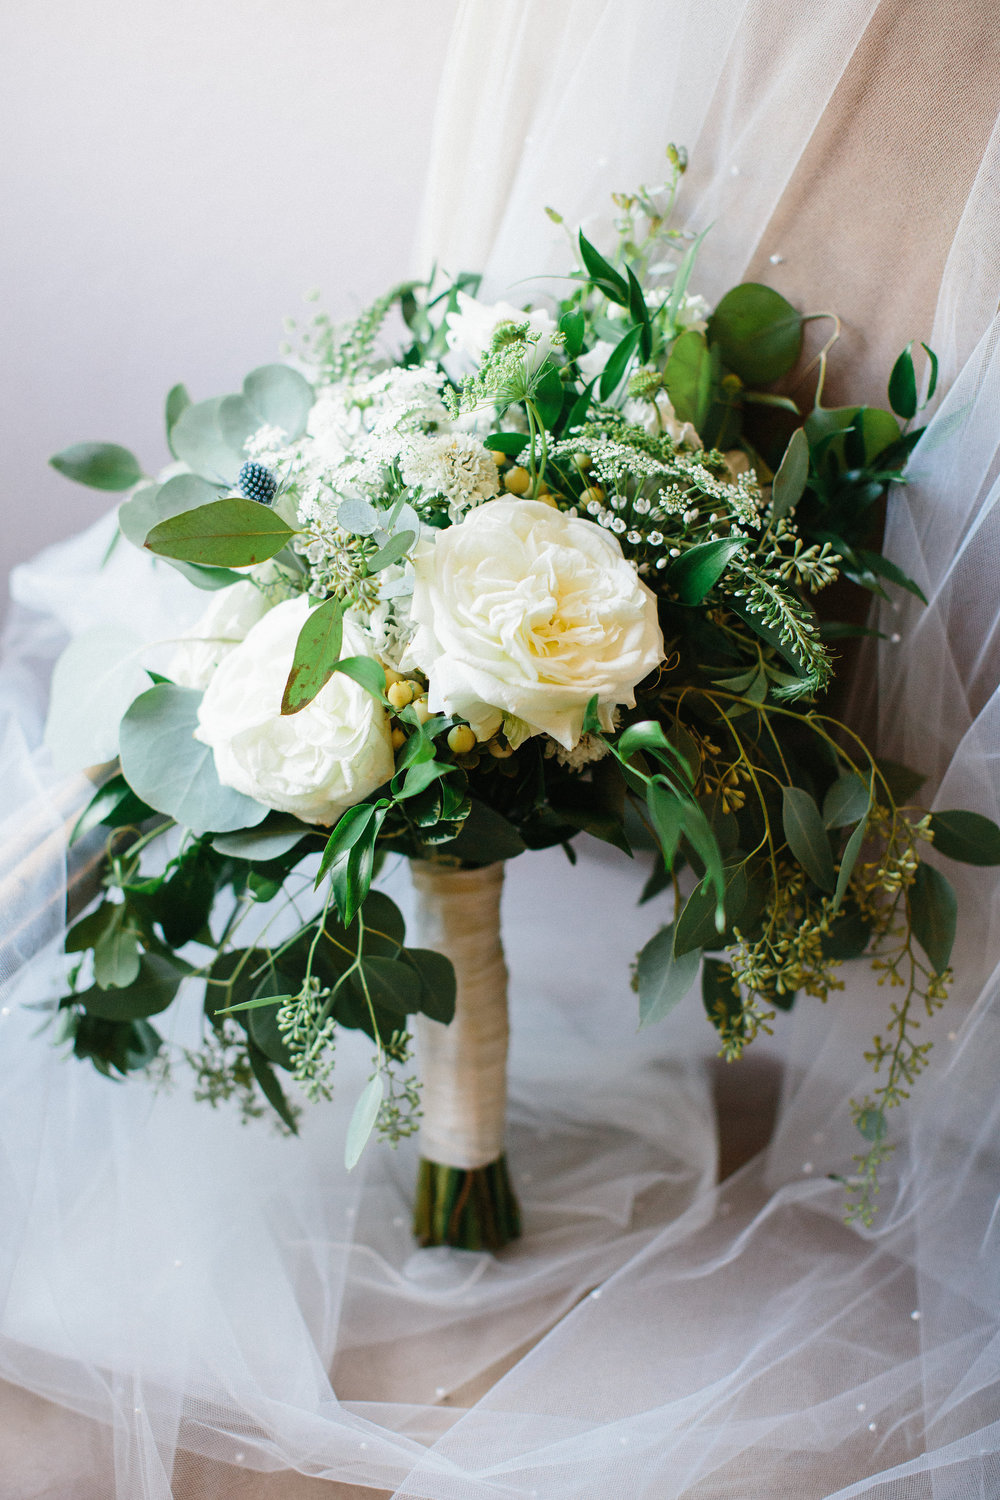 Natural Cascading Bouquet. White Garden Roses, Eucalyptus & Greenery. Rose of Sharon Floral Designs